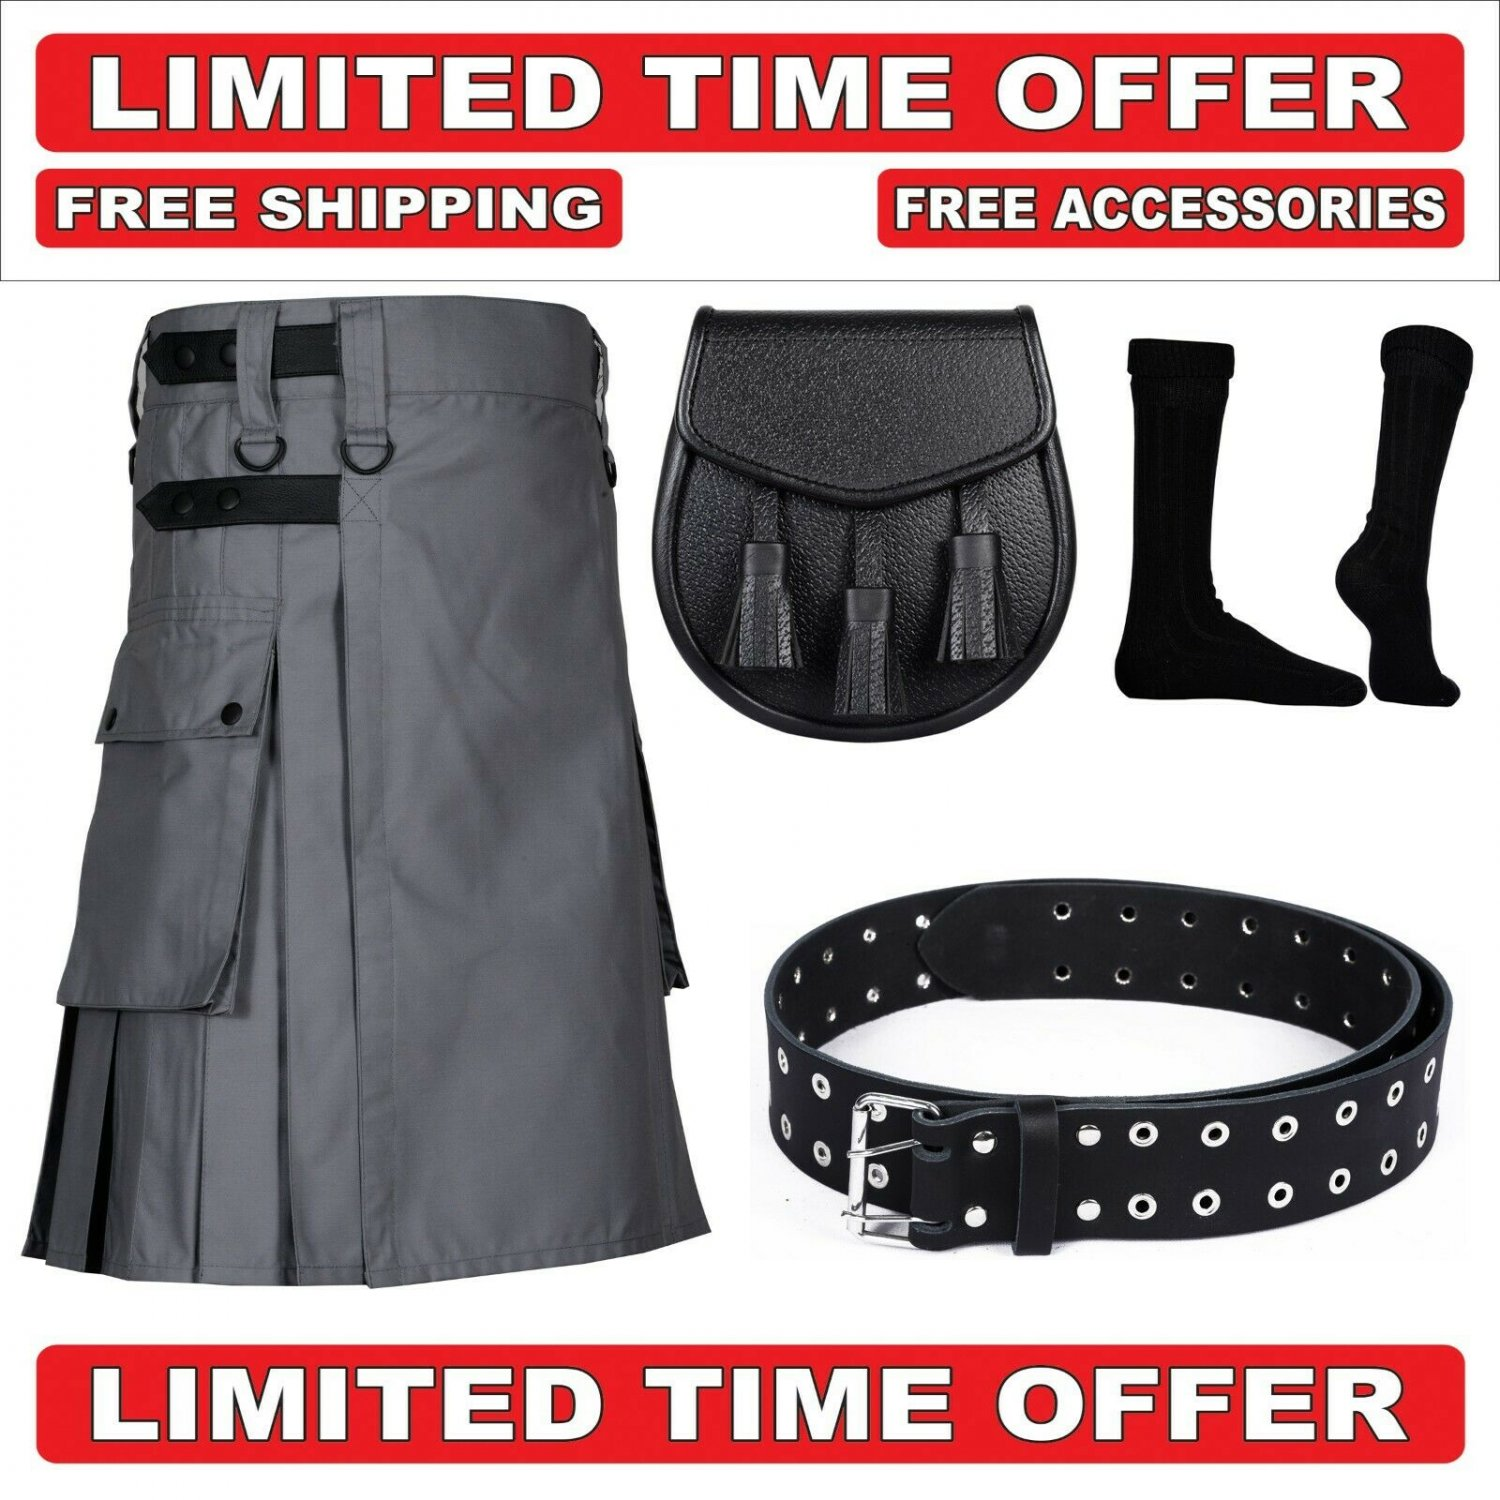 44 size grey Men's Cotton Utility Scottish Kilt With Free Accessories and Free Shipping